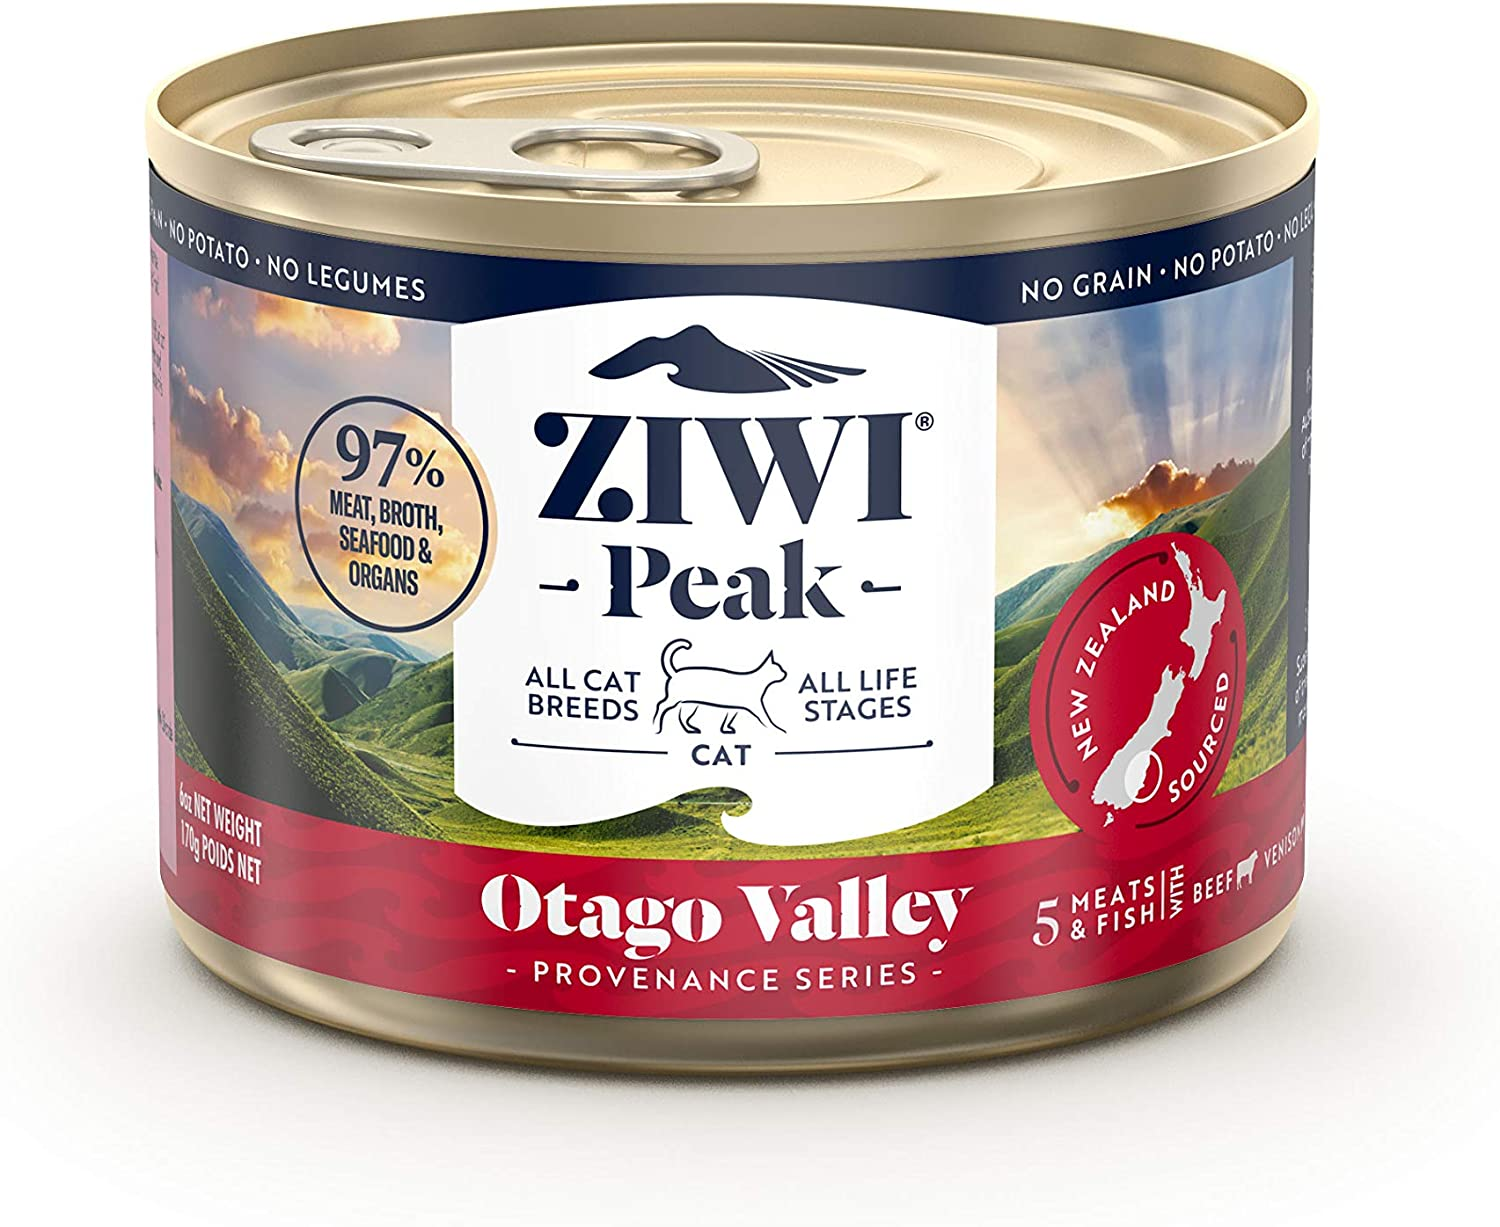 ZIWI Peak Provenance Canned Wet Cat Food – All Natural, High Protein, Grain Free with Superfoods (Otago Valley, Case of 12, 6oz Cans)